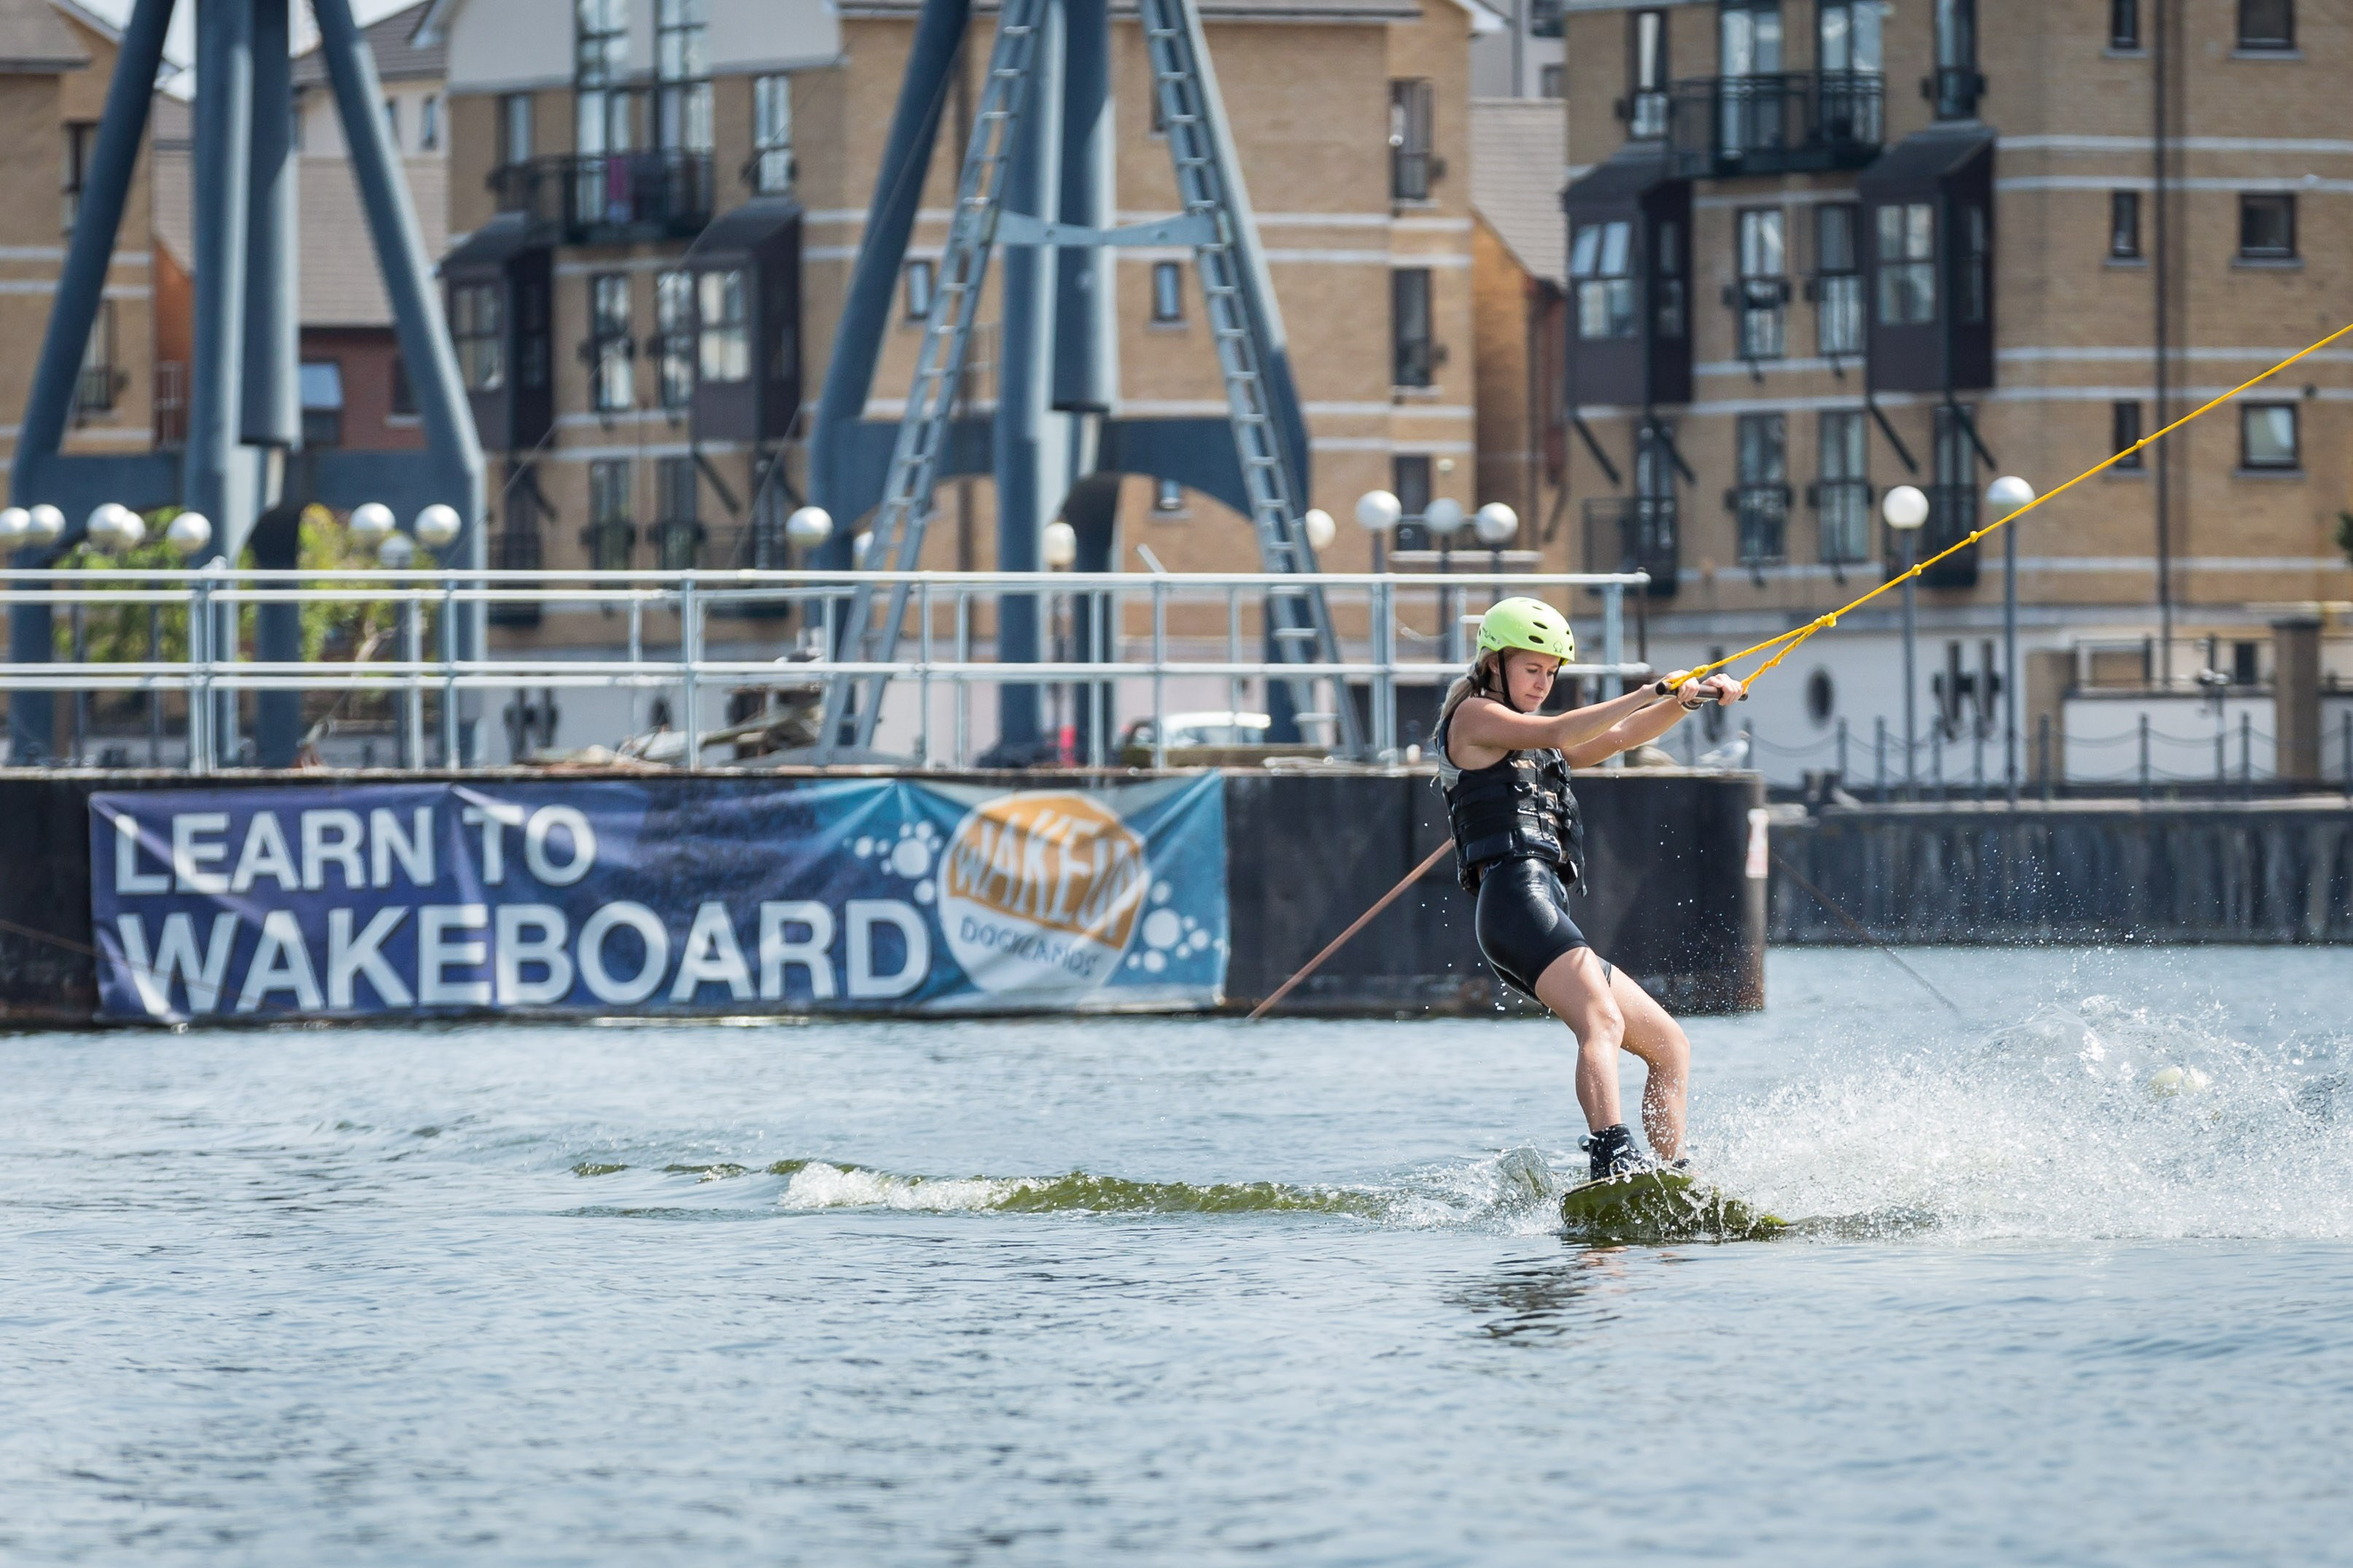 A beginner wakeboarding at the Royal Docks